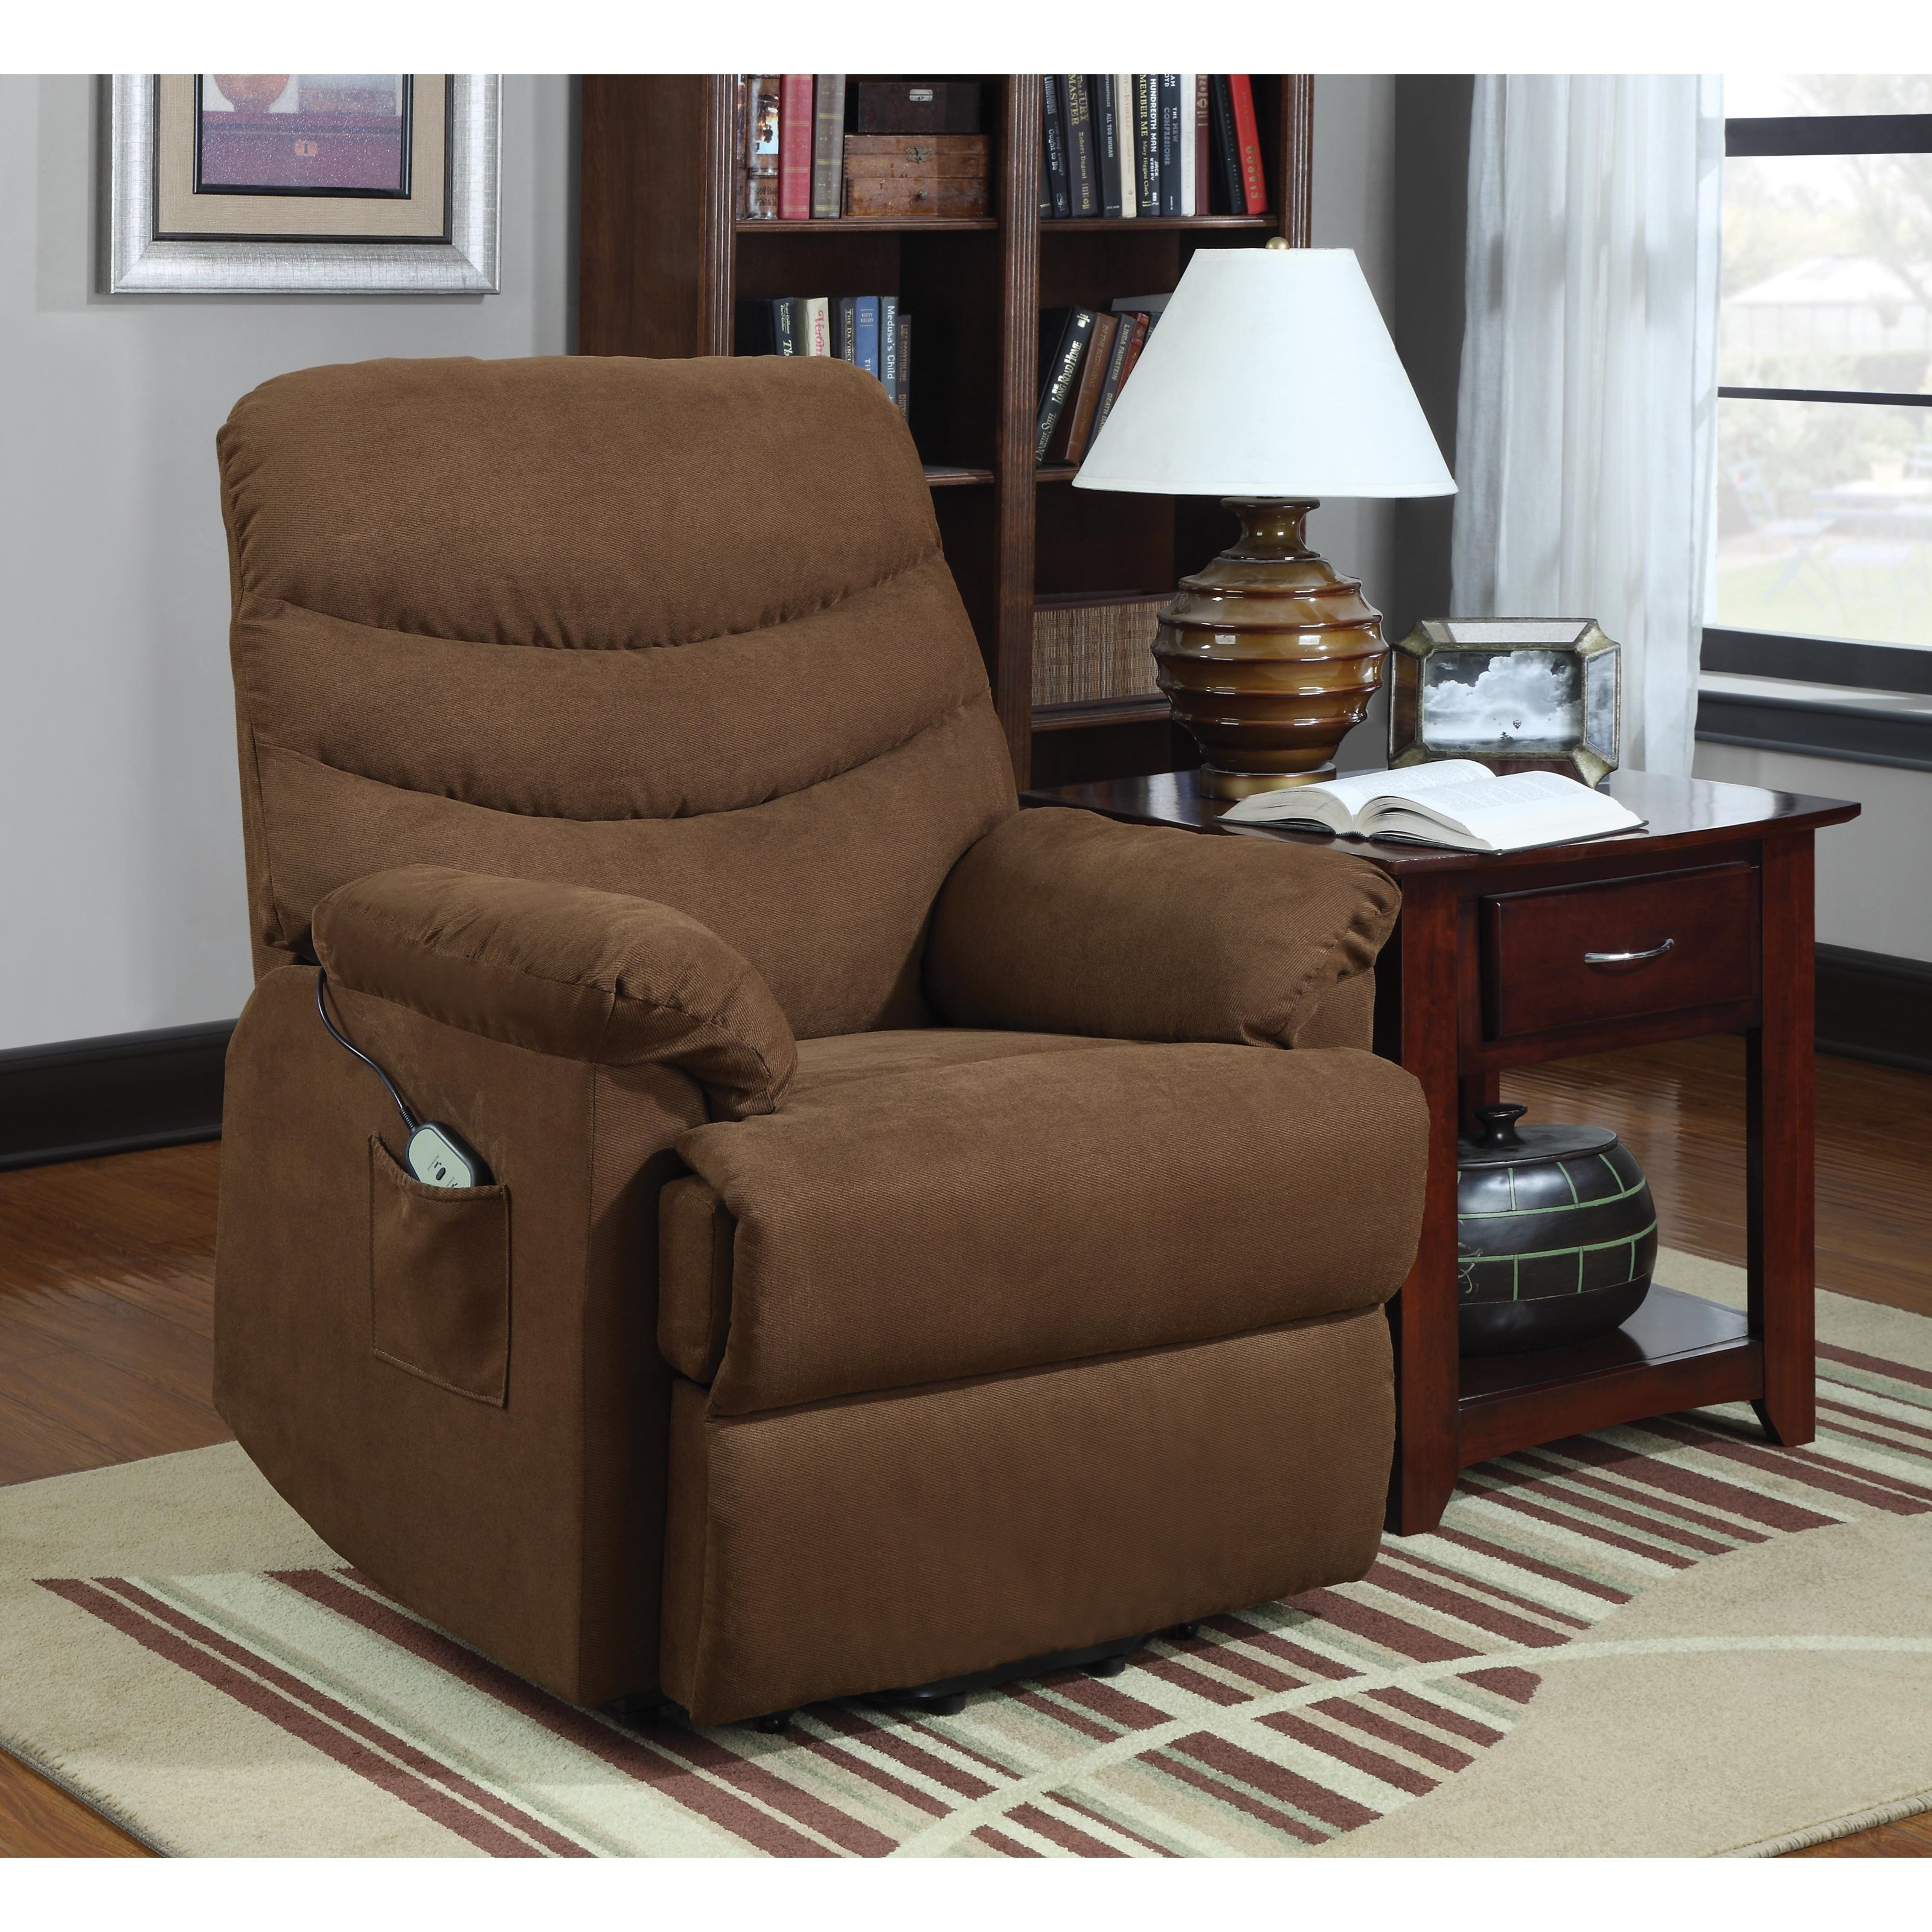 Lift Chairs Power Lift Chair by Homelegance at Beck's Furniture